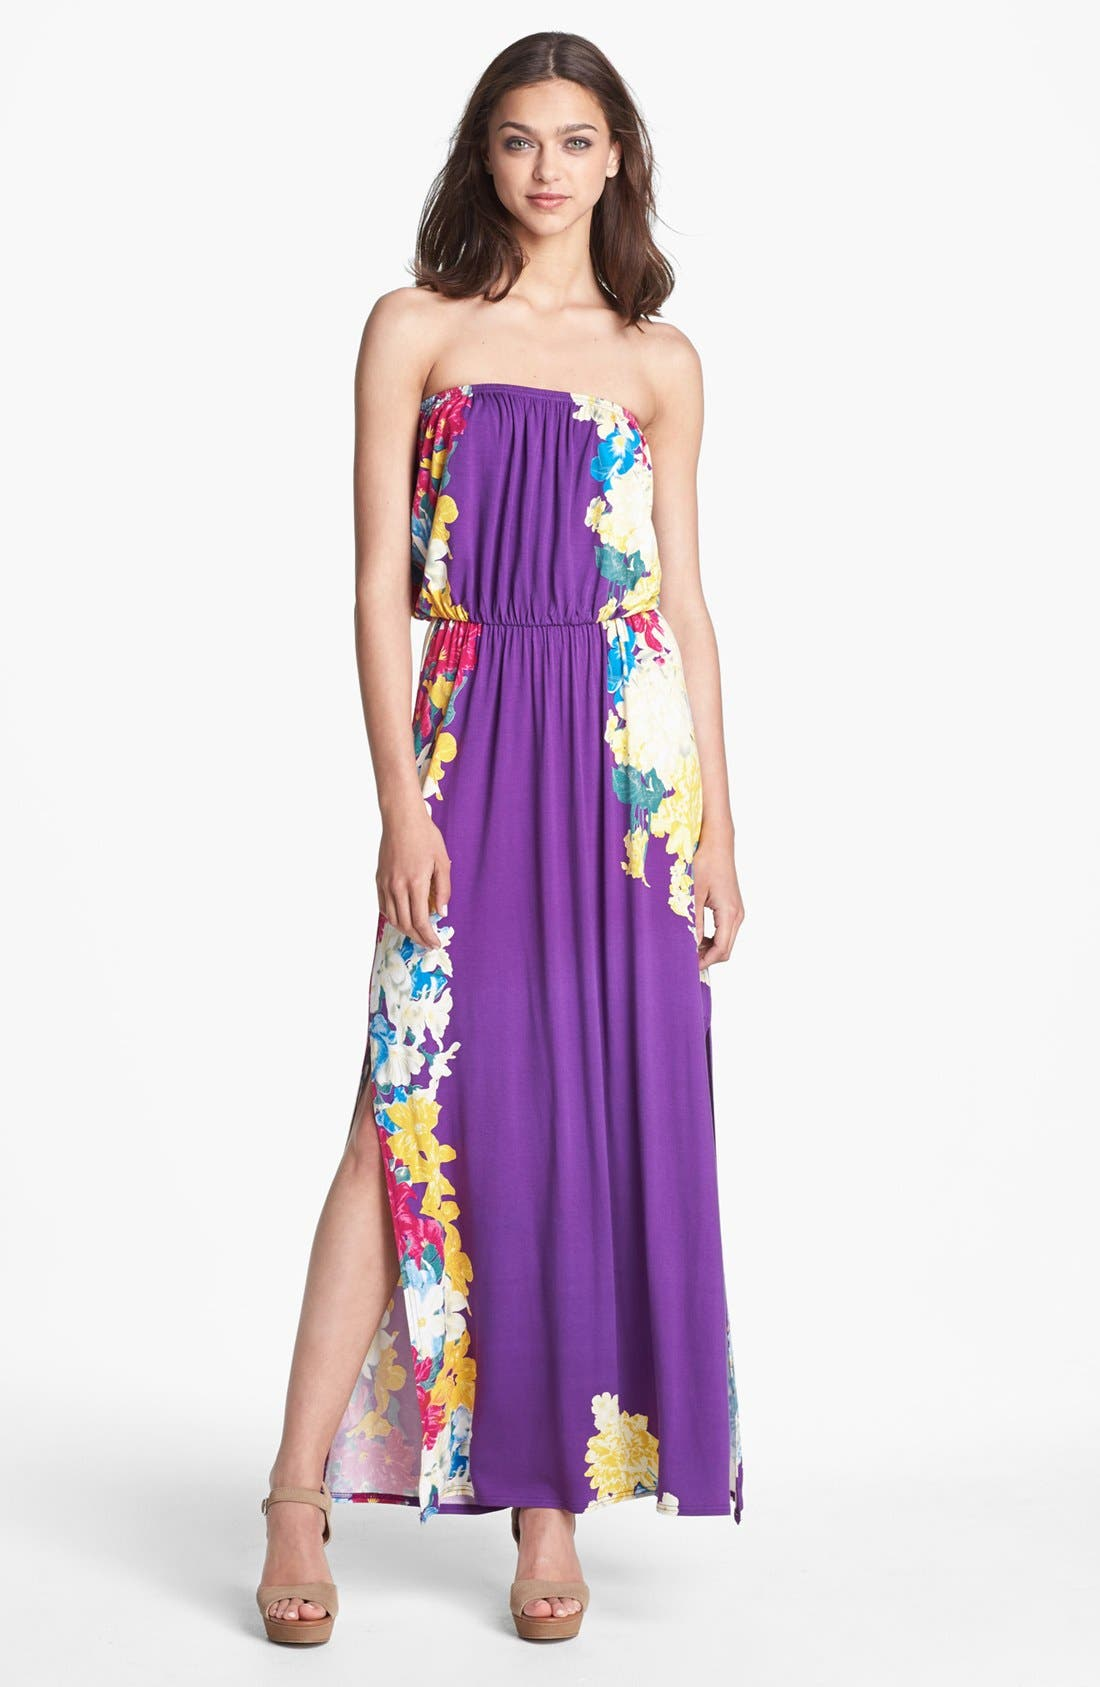 Alternate Image 1 Selected - Felicity & Coco Print Jersey Maxi Dress (Regular & Petite) (Nordstrom Exclusive)